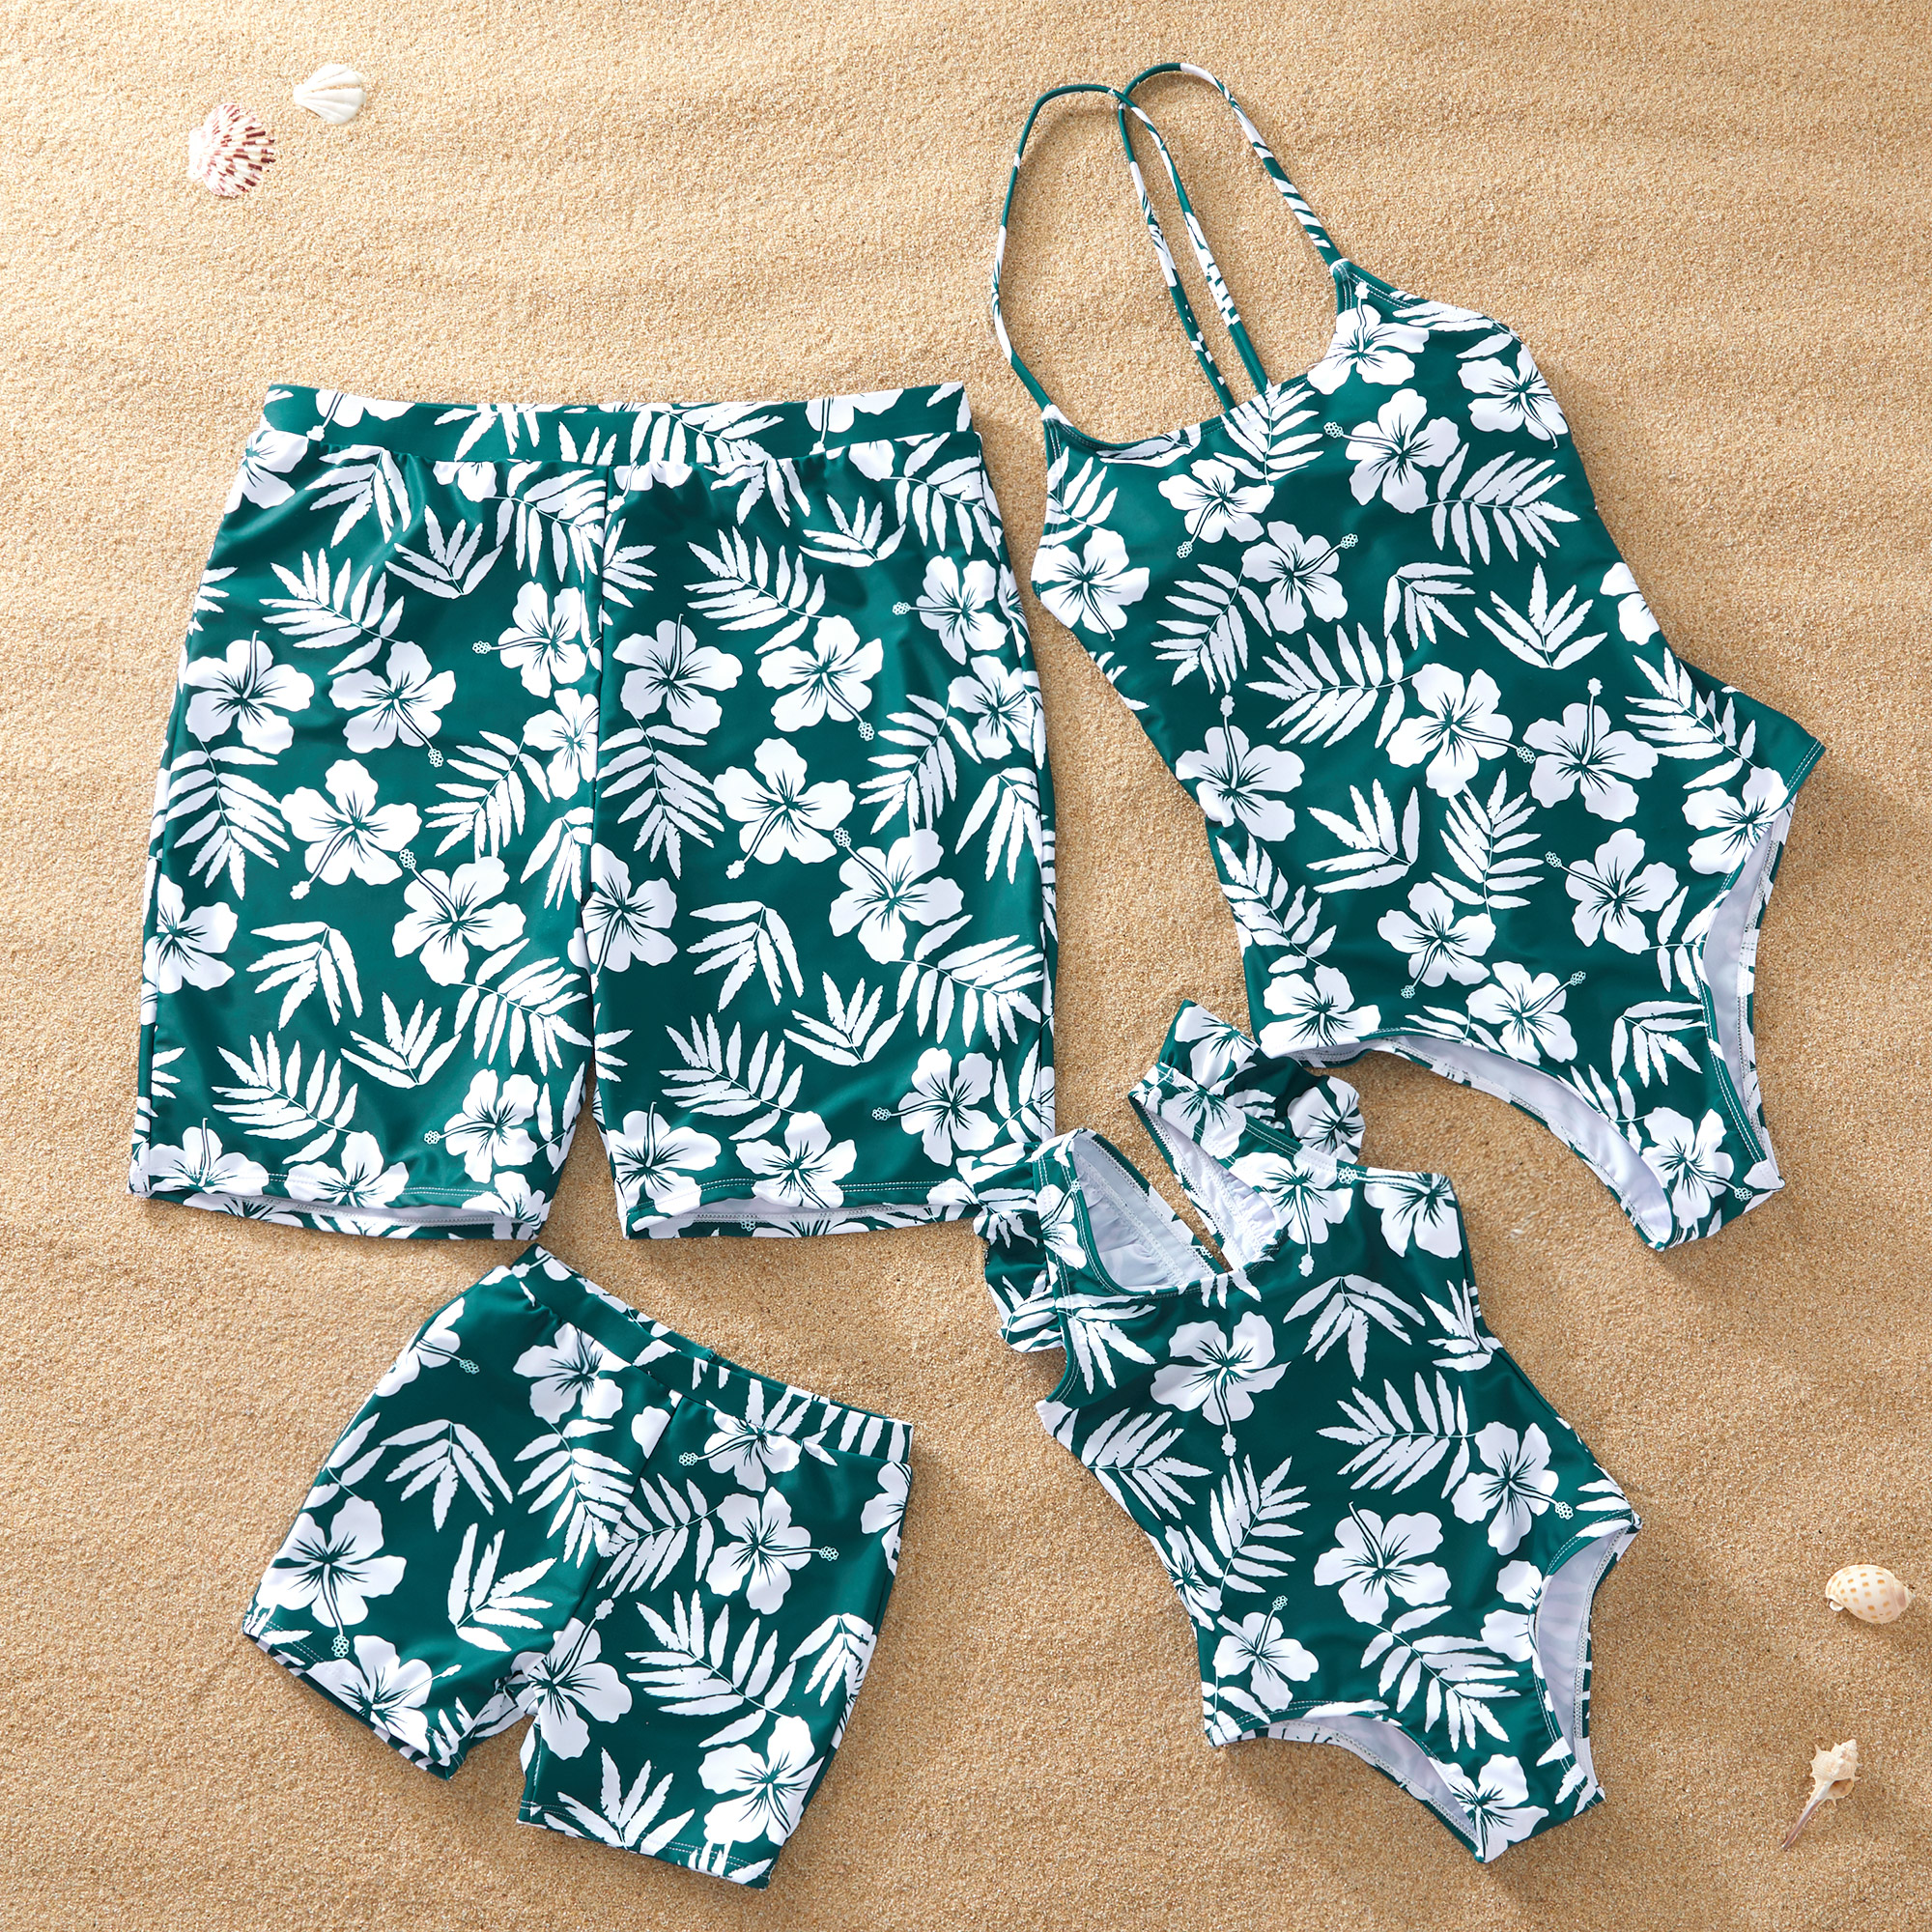 Flower and leaves Matching Swimsuit for Family